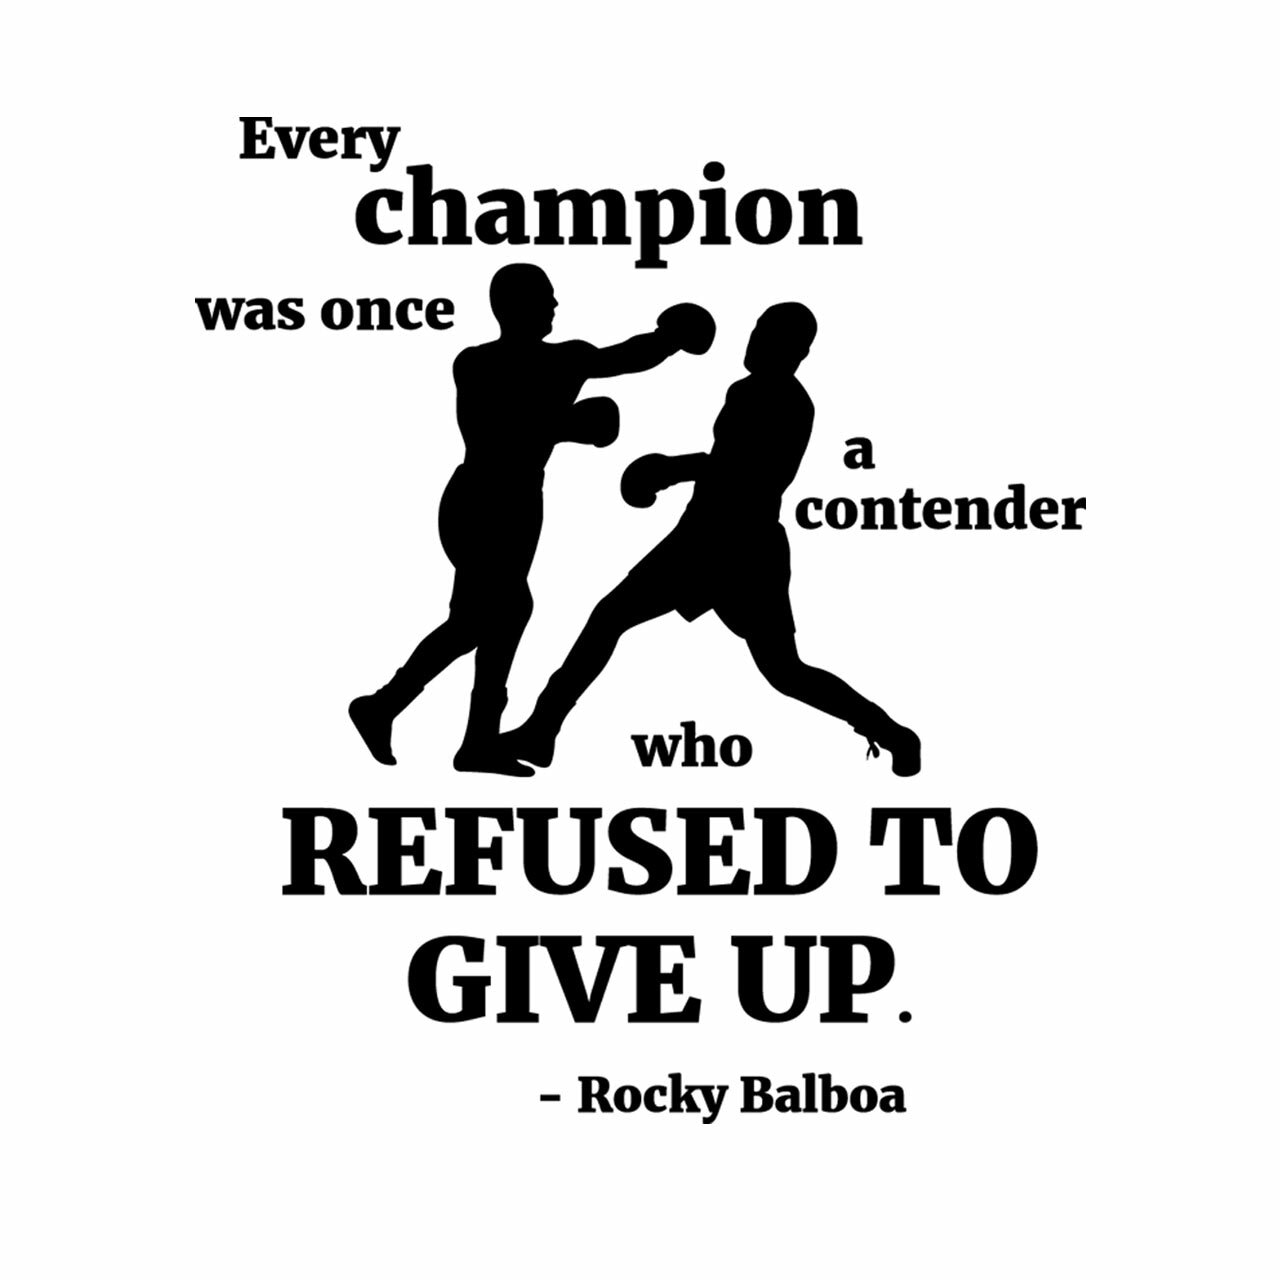 Every champion was once a contender who refused to give up -Rocky Balboa layout on a white background